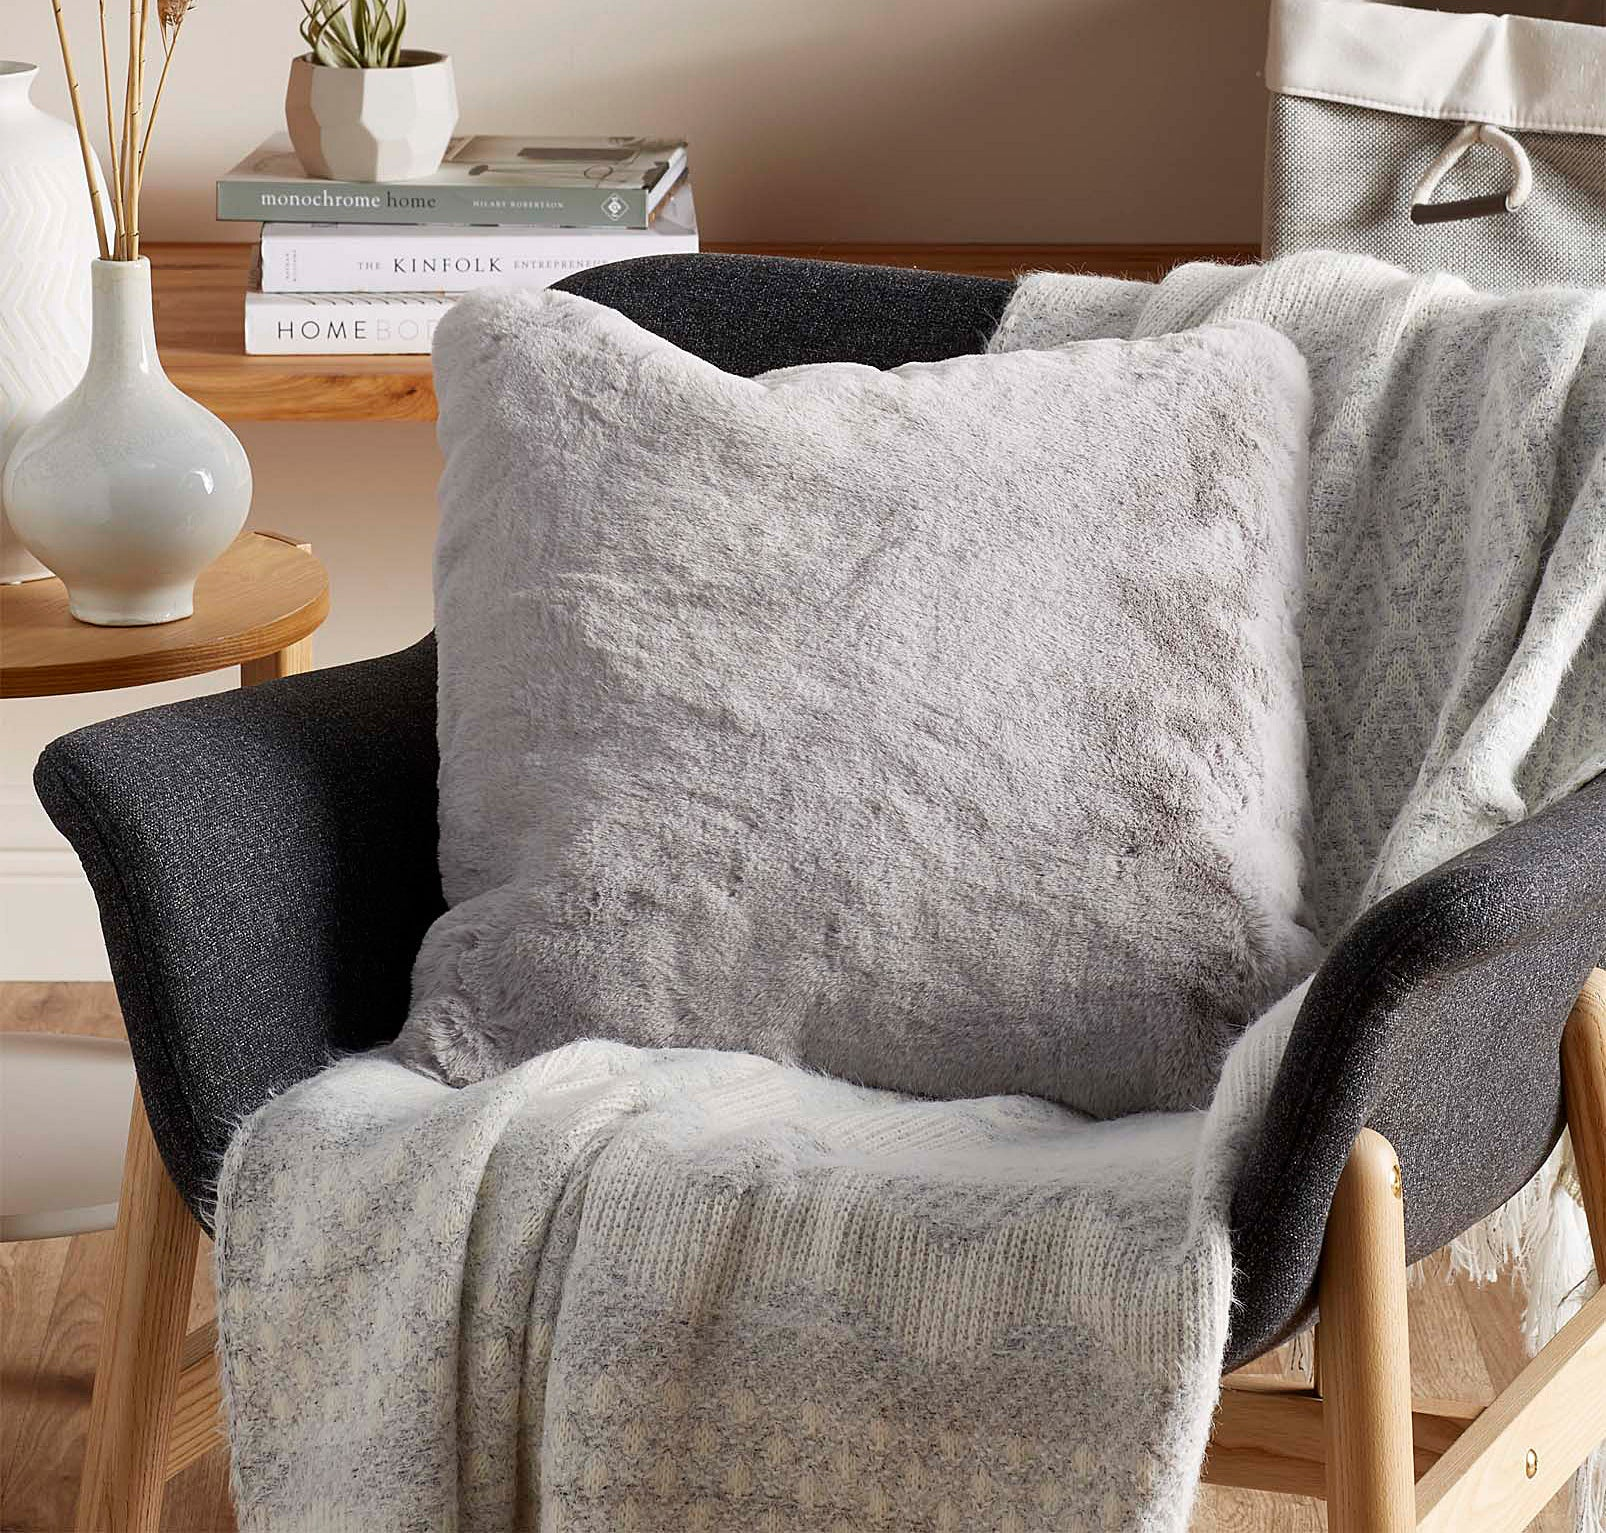 A fluffy throw pillow on a small chair with a blanket